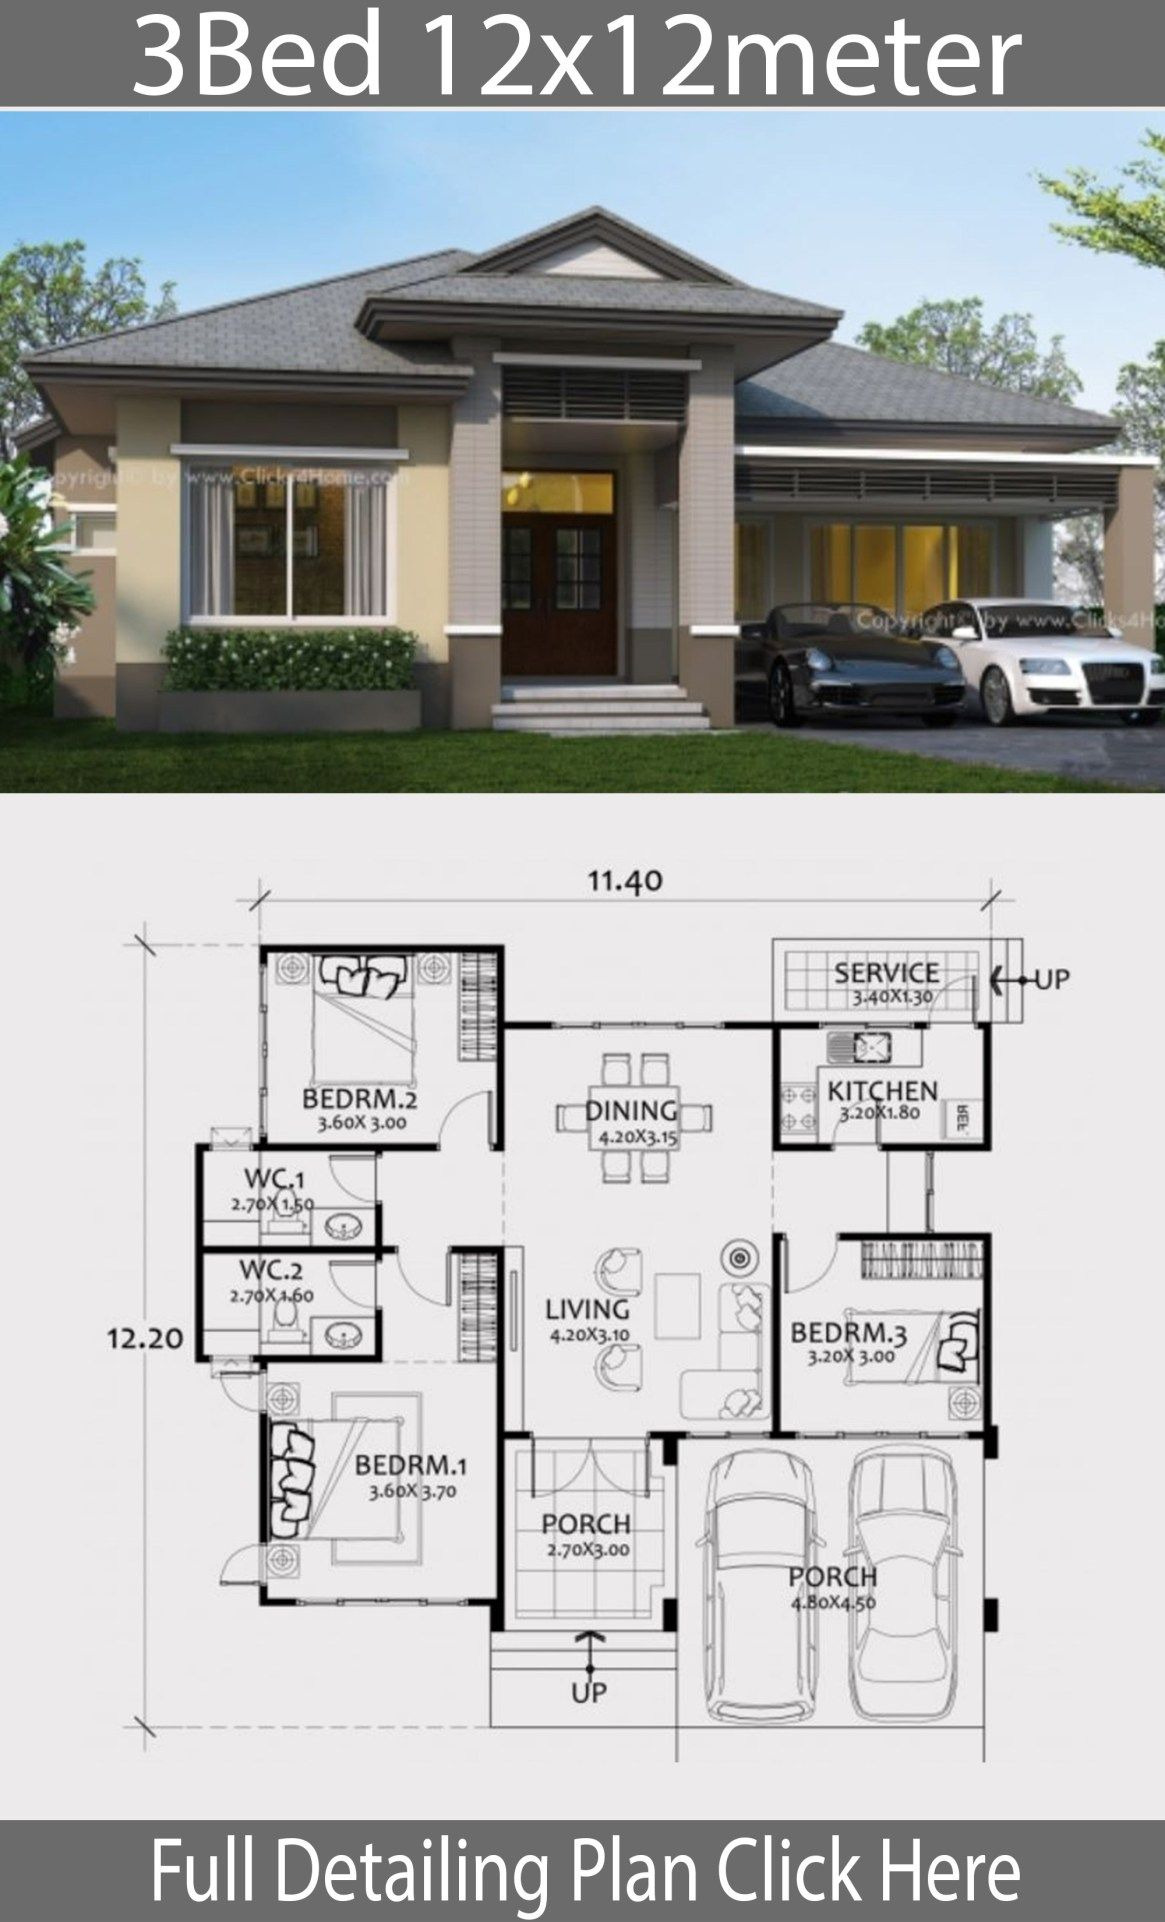 Modern House Plans Designs with Photos 2021 - hotelsrem.com